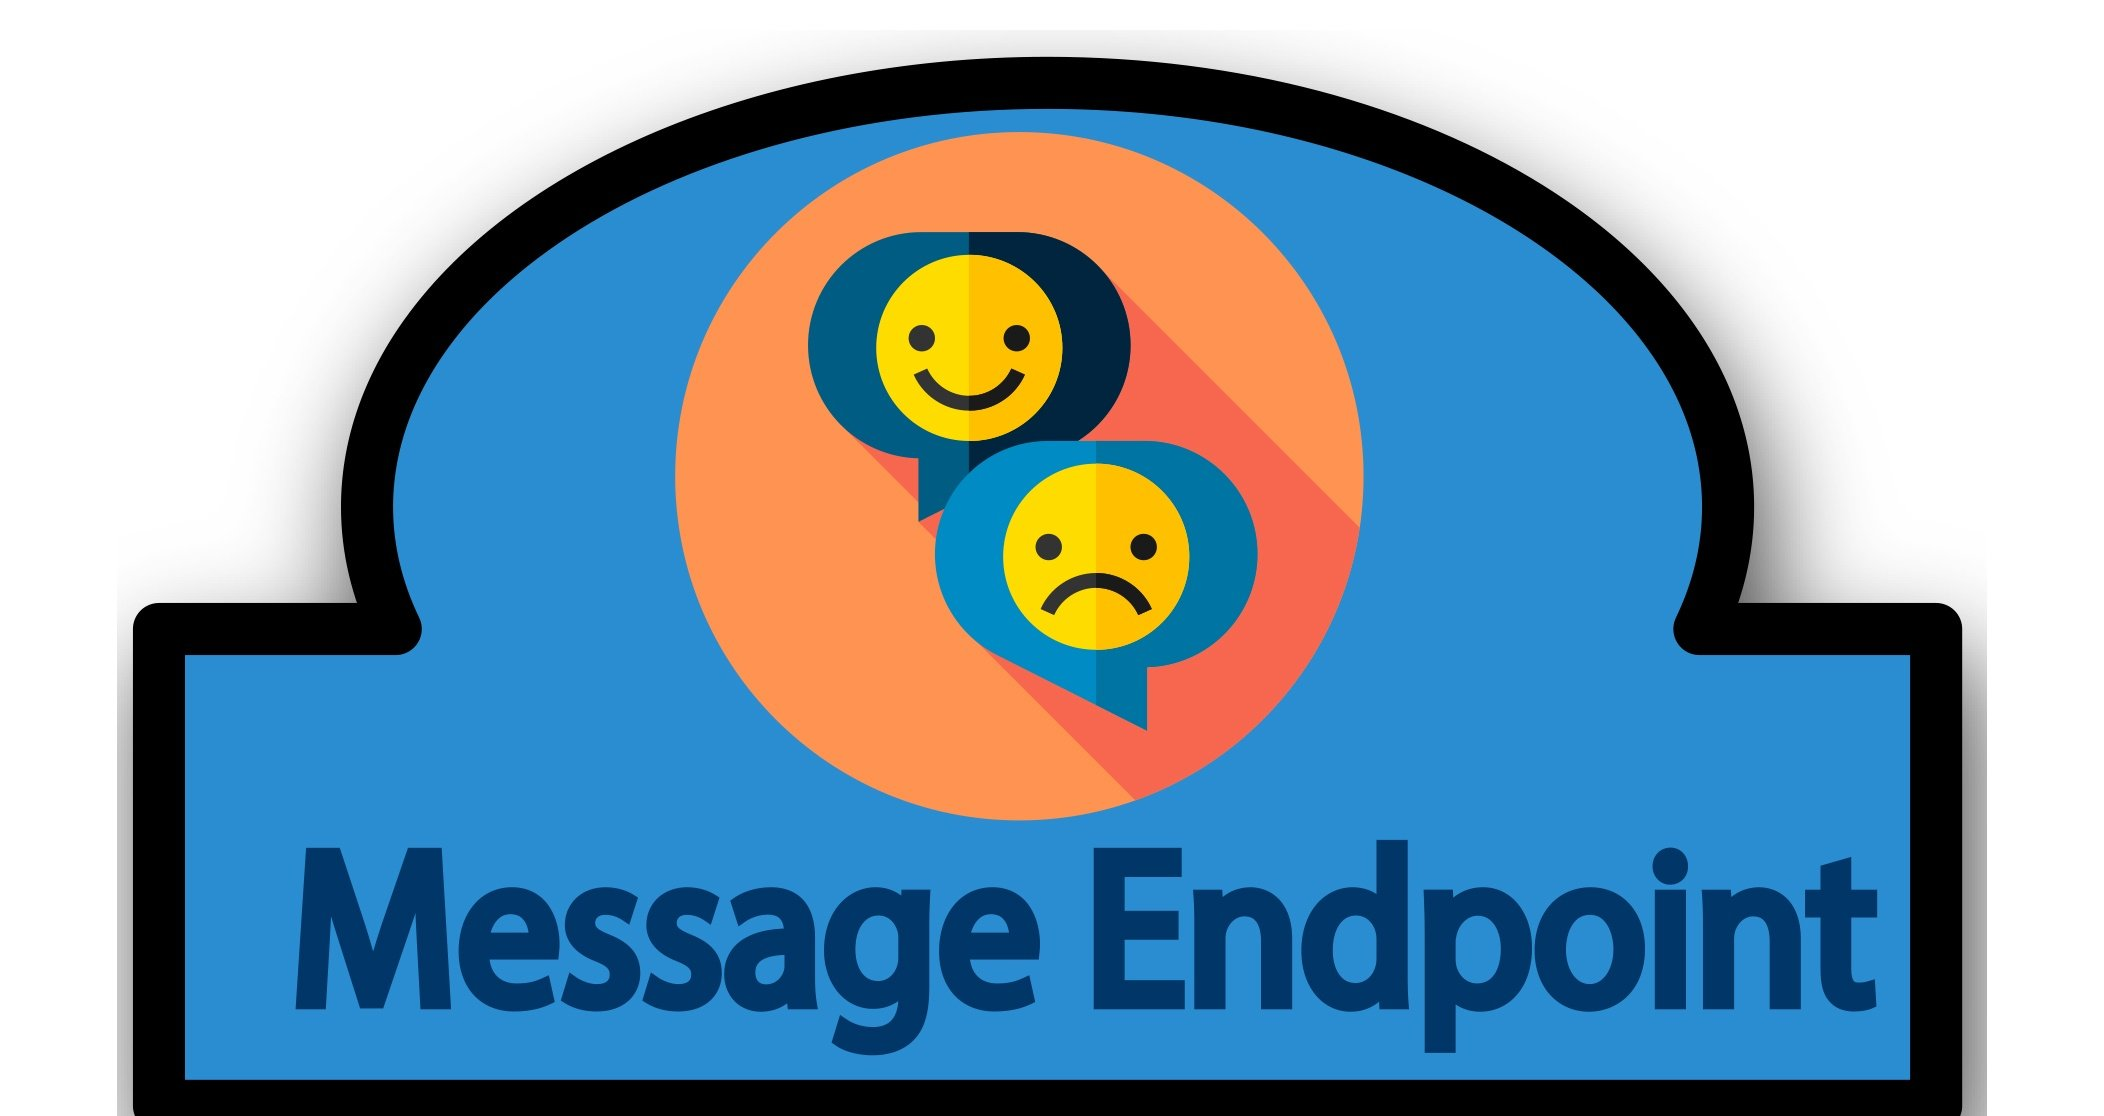 Message Endpoint